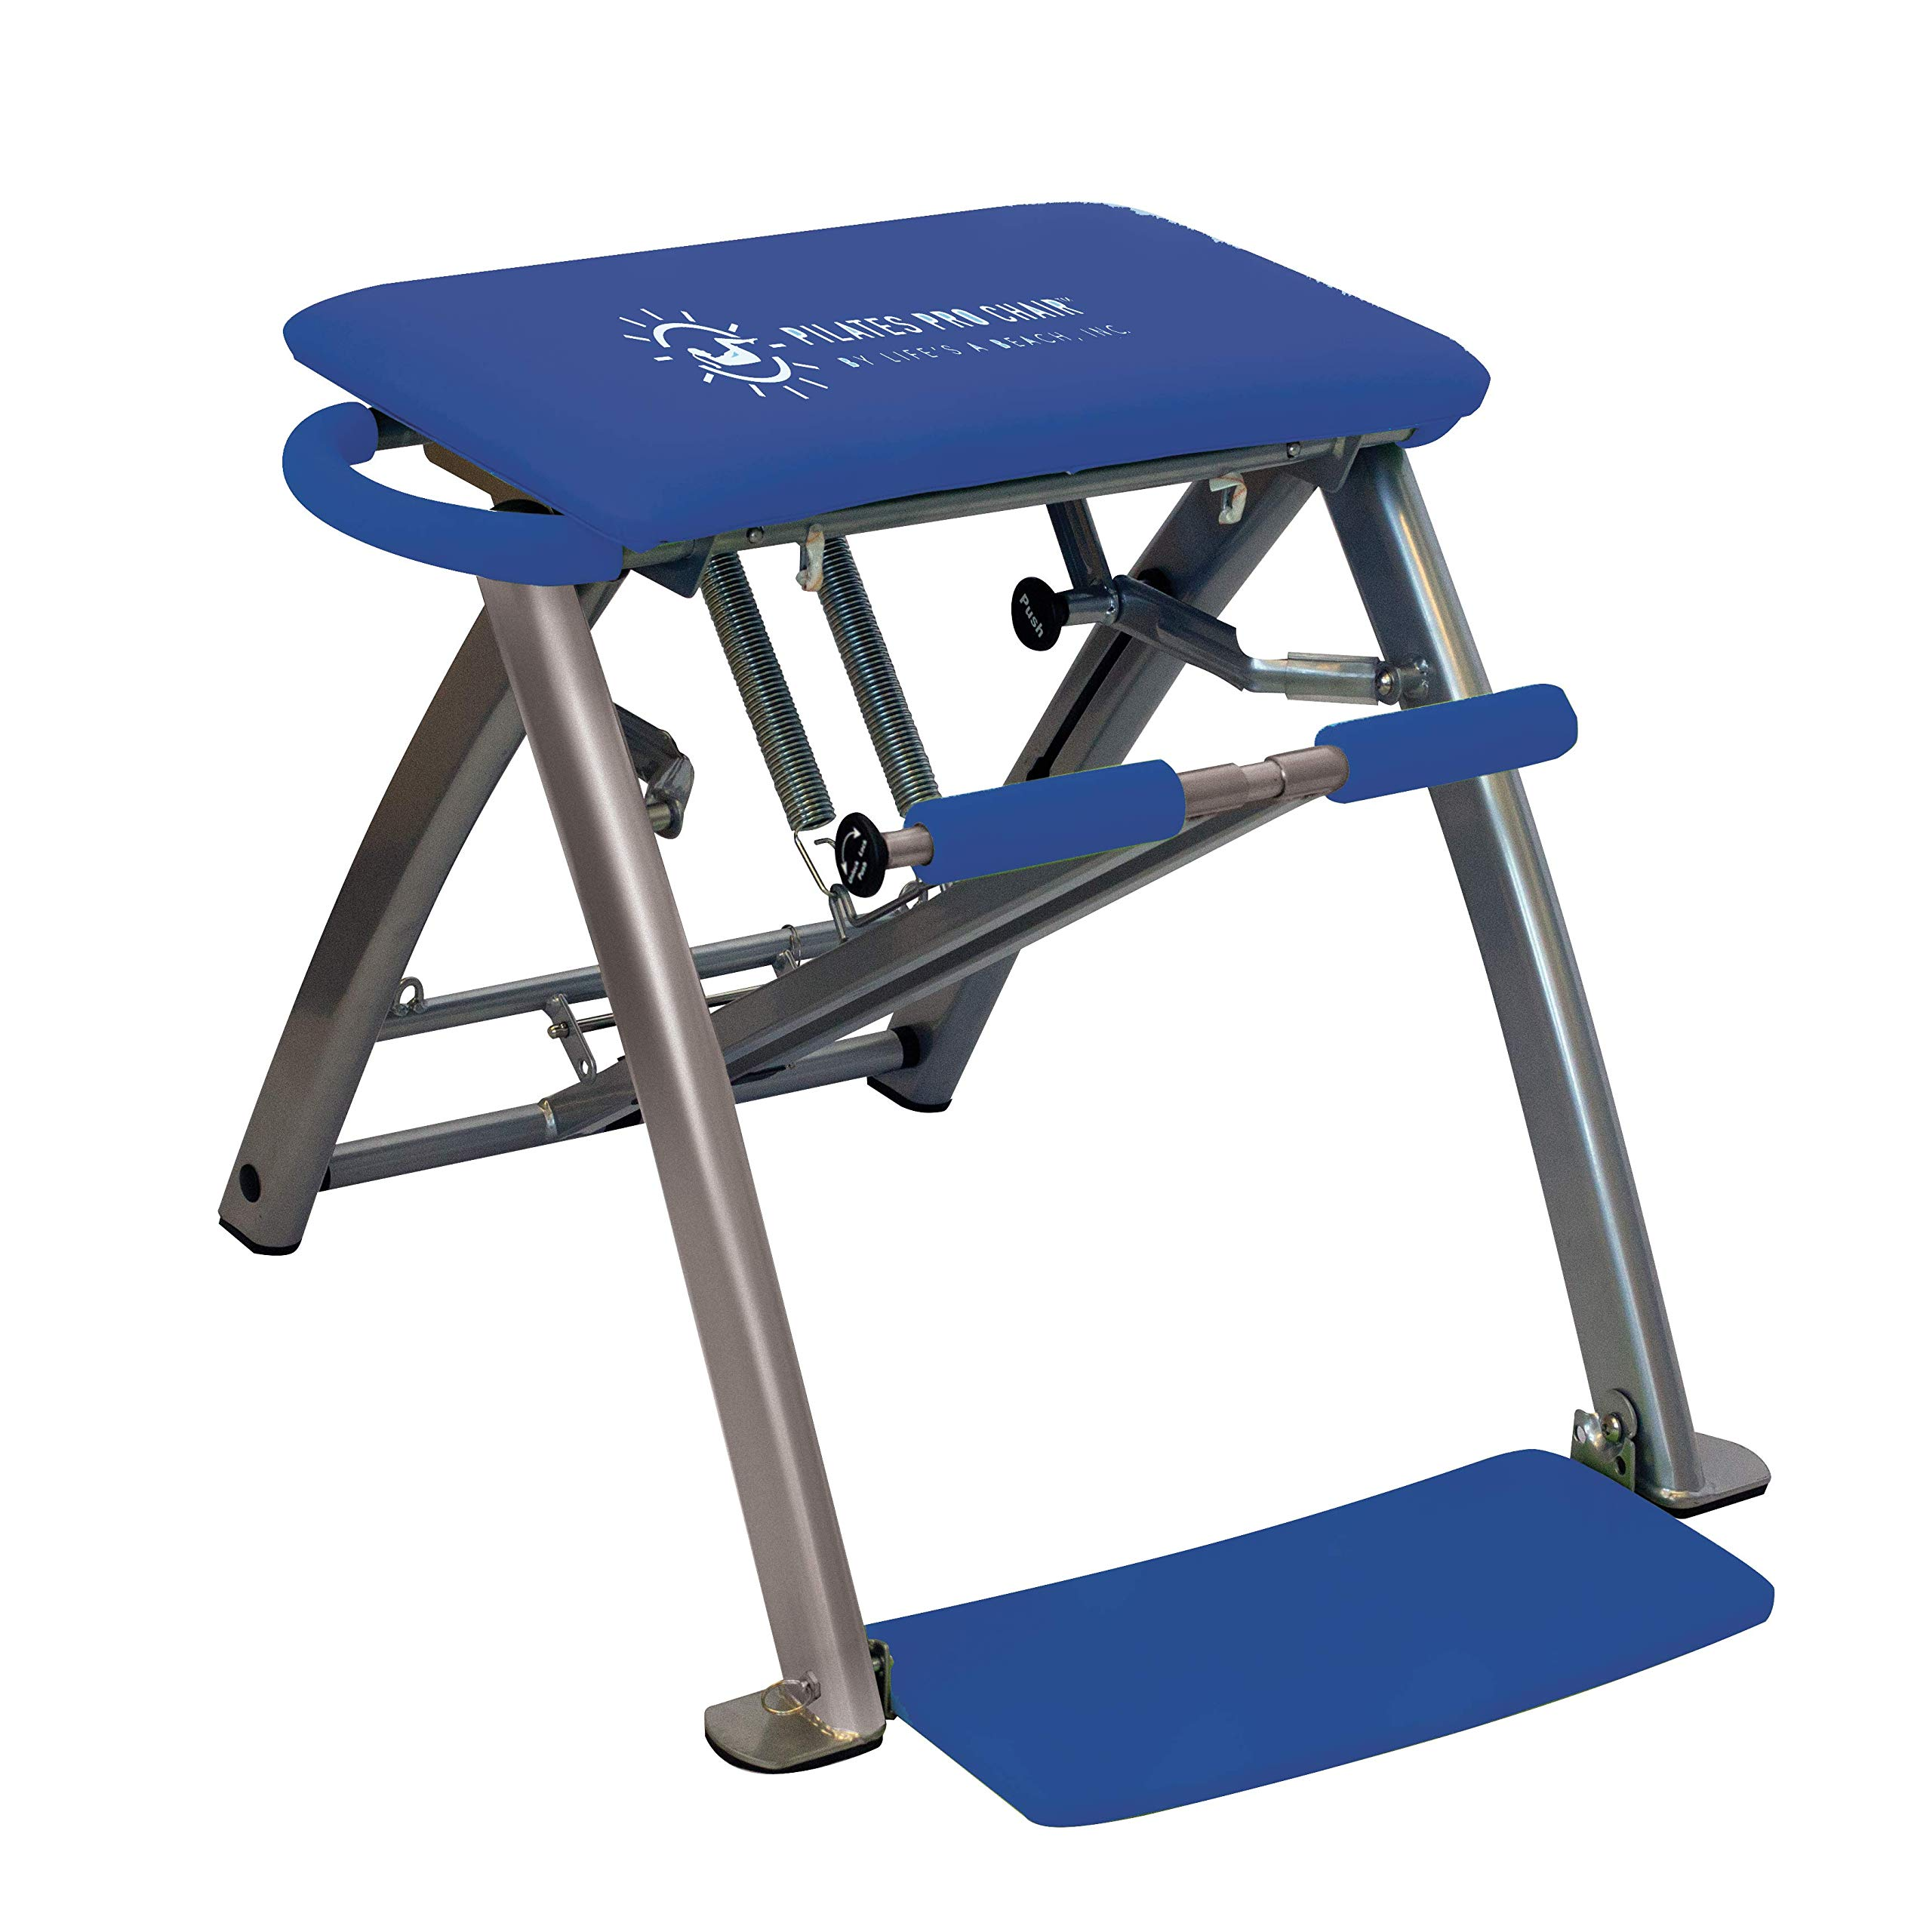 Life's A Beach Pilates PRO Chair with 4 DVDs (Royal Blue)